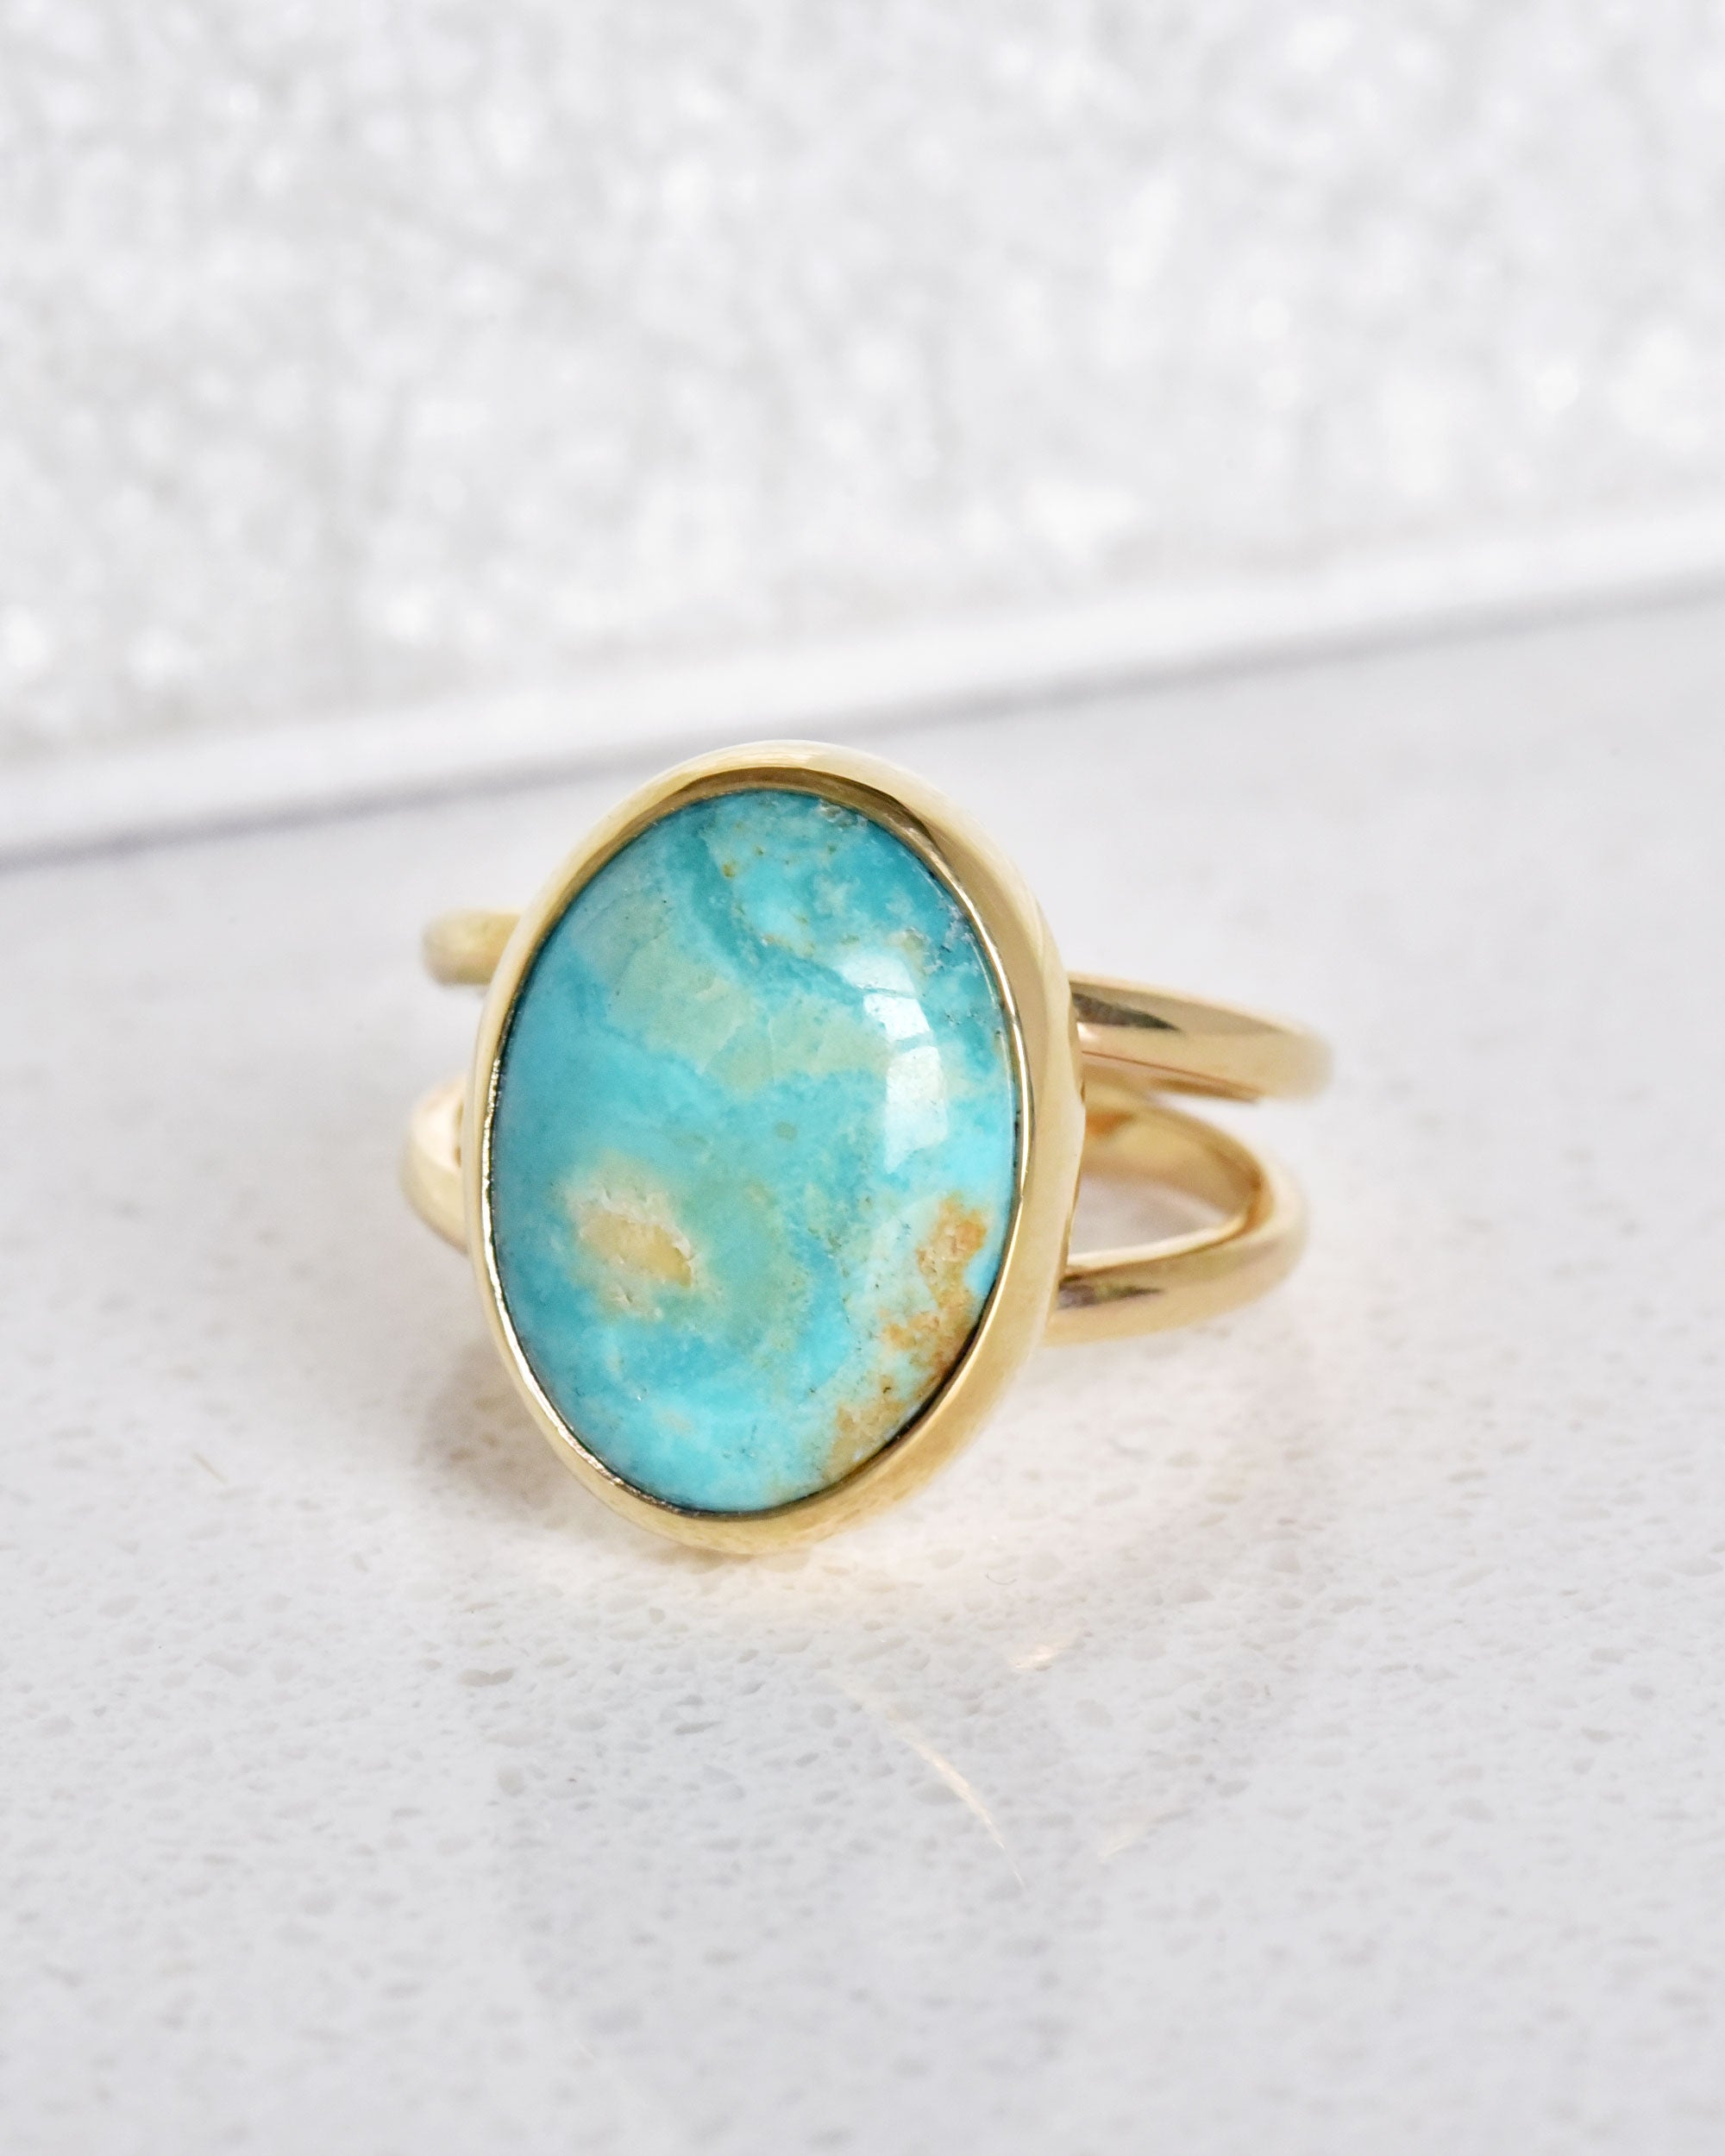 Mona Lisa Turquoise 14K Gold Ring (size 6.75)